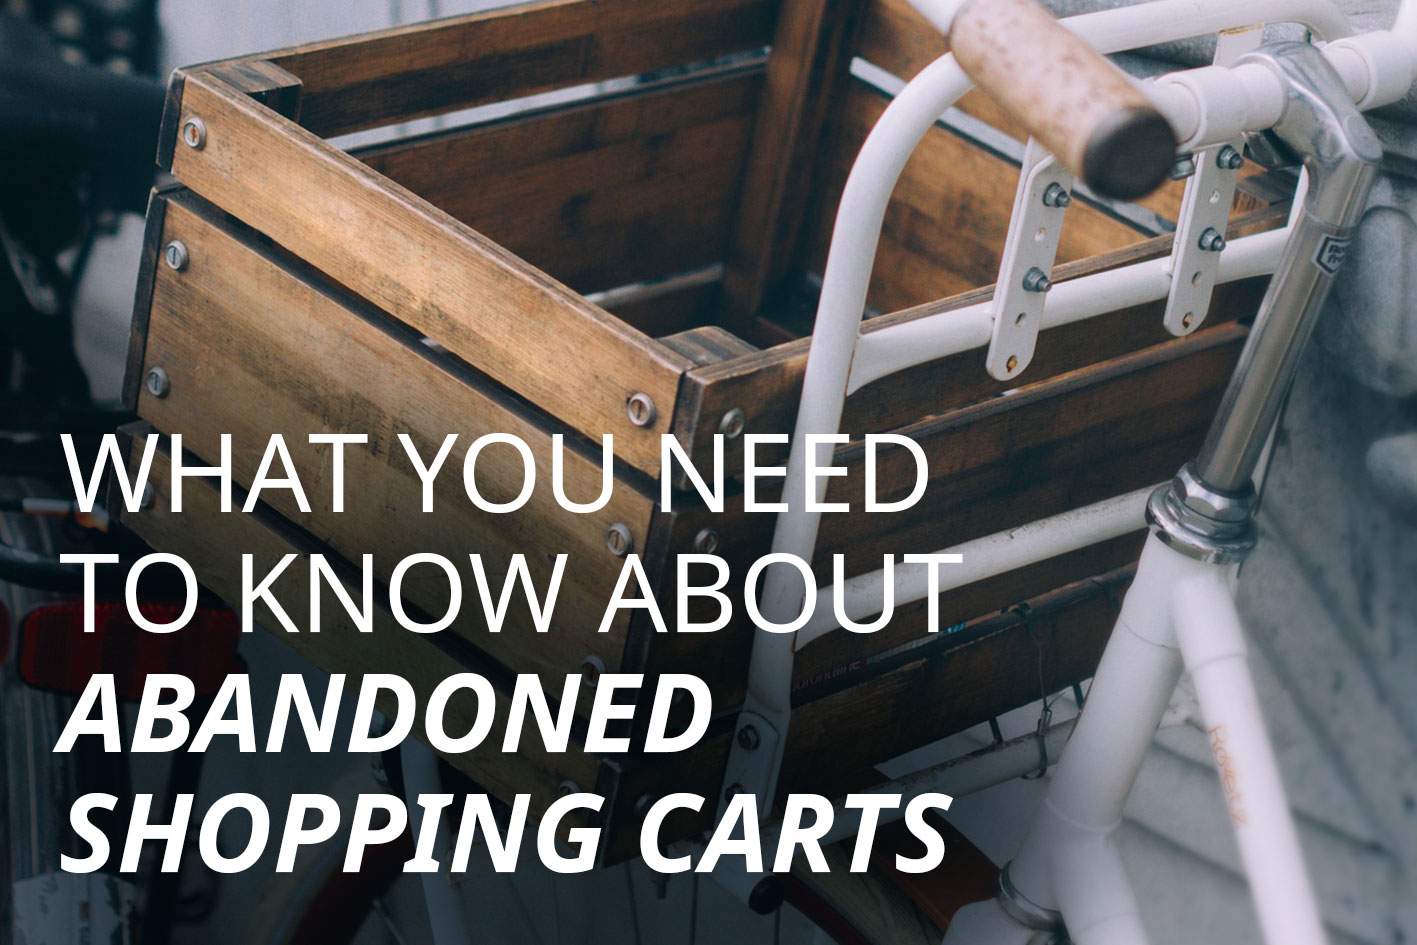 What you need to know about abandoned shopping carts in e-commerce